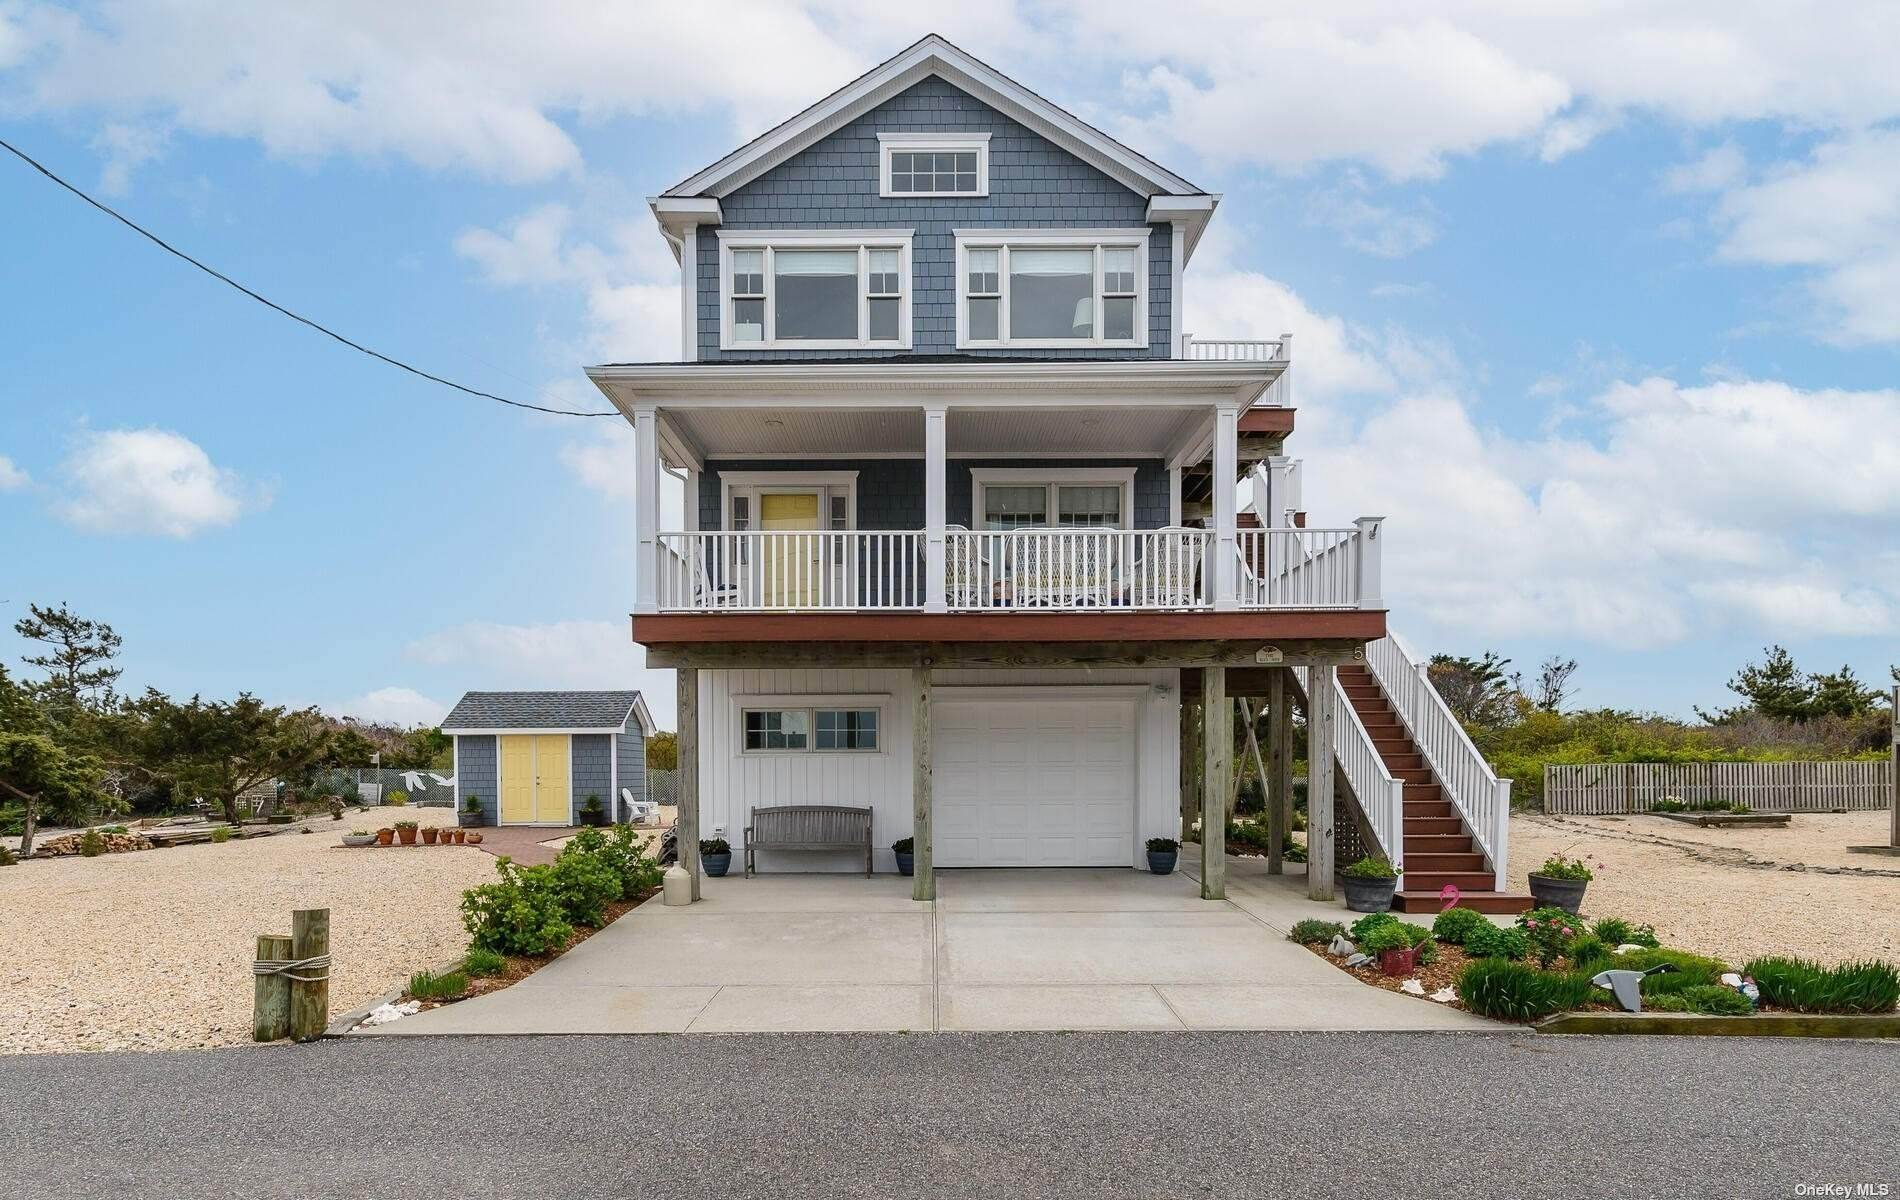 Residential for Sale at 5 Broadway Gilgo Beach, New York 11702 United States